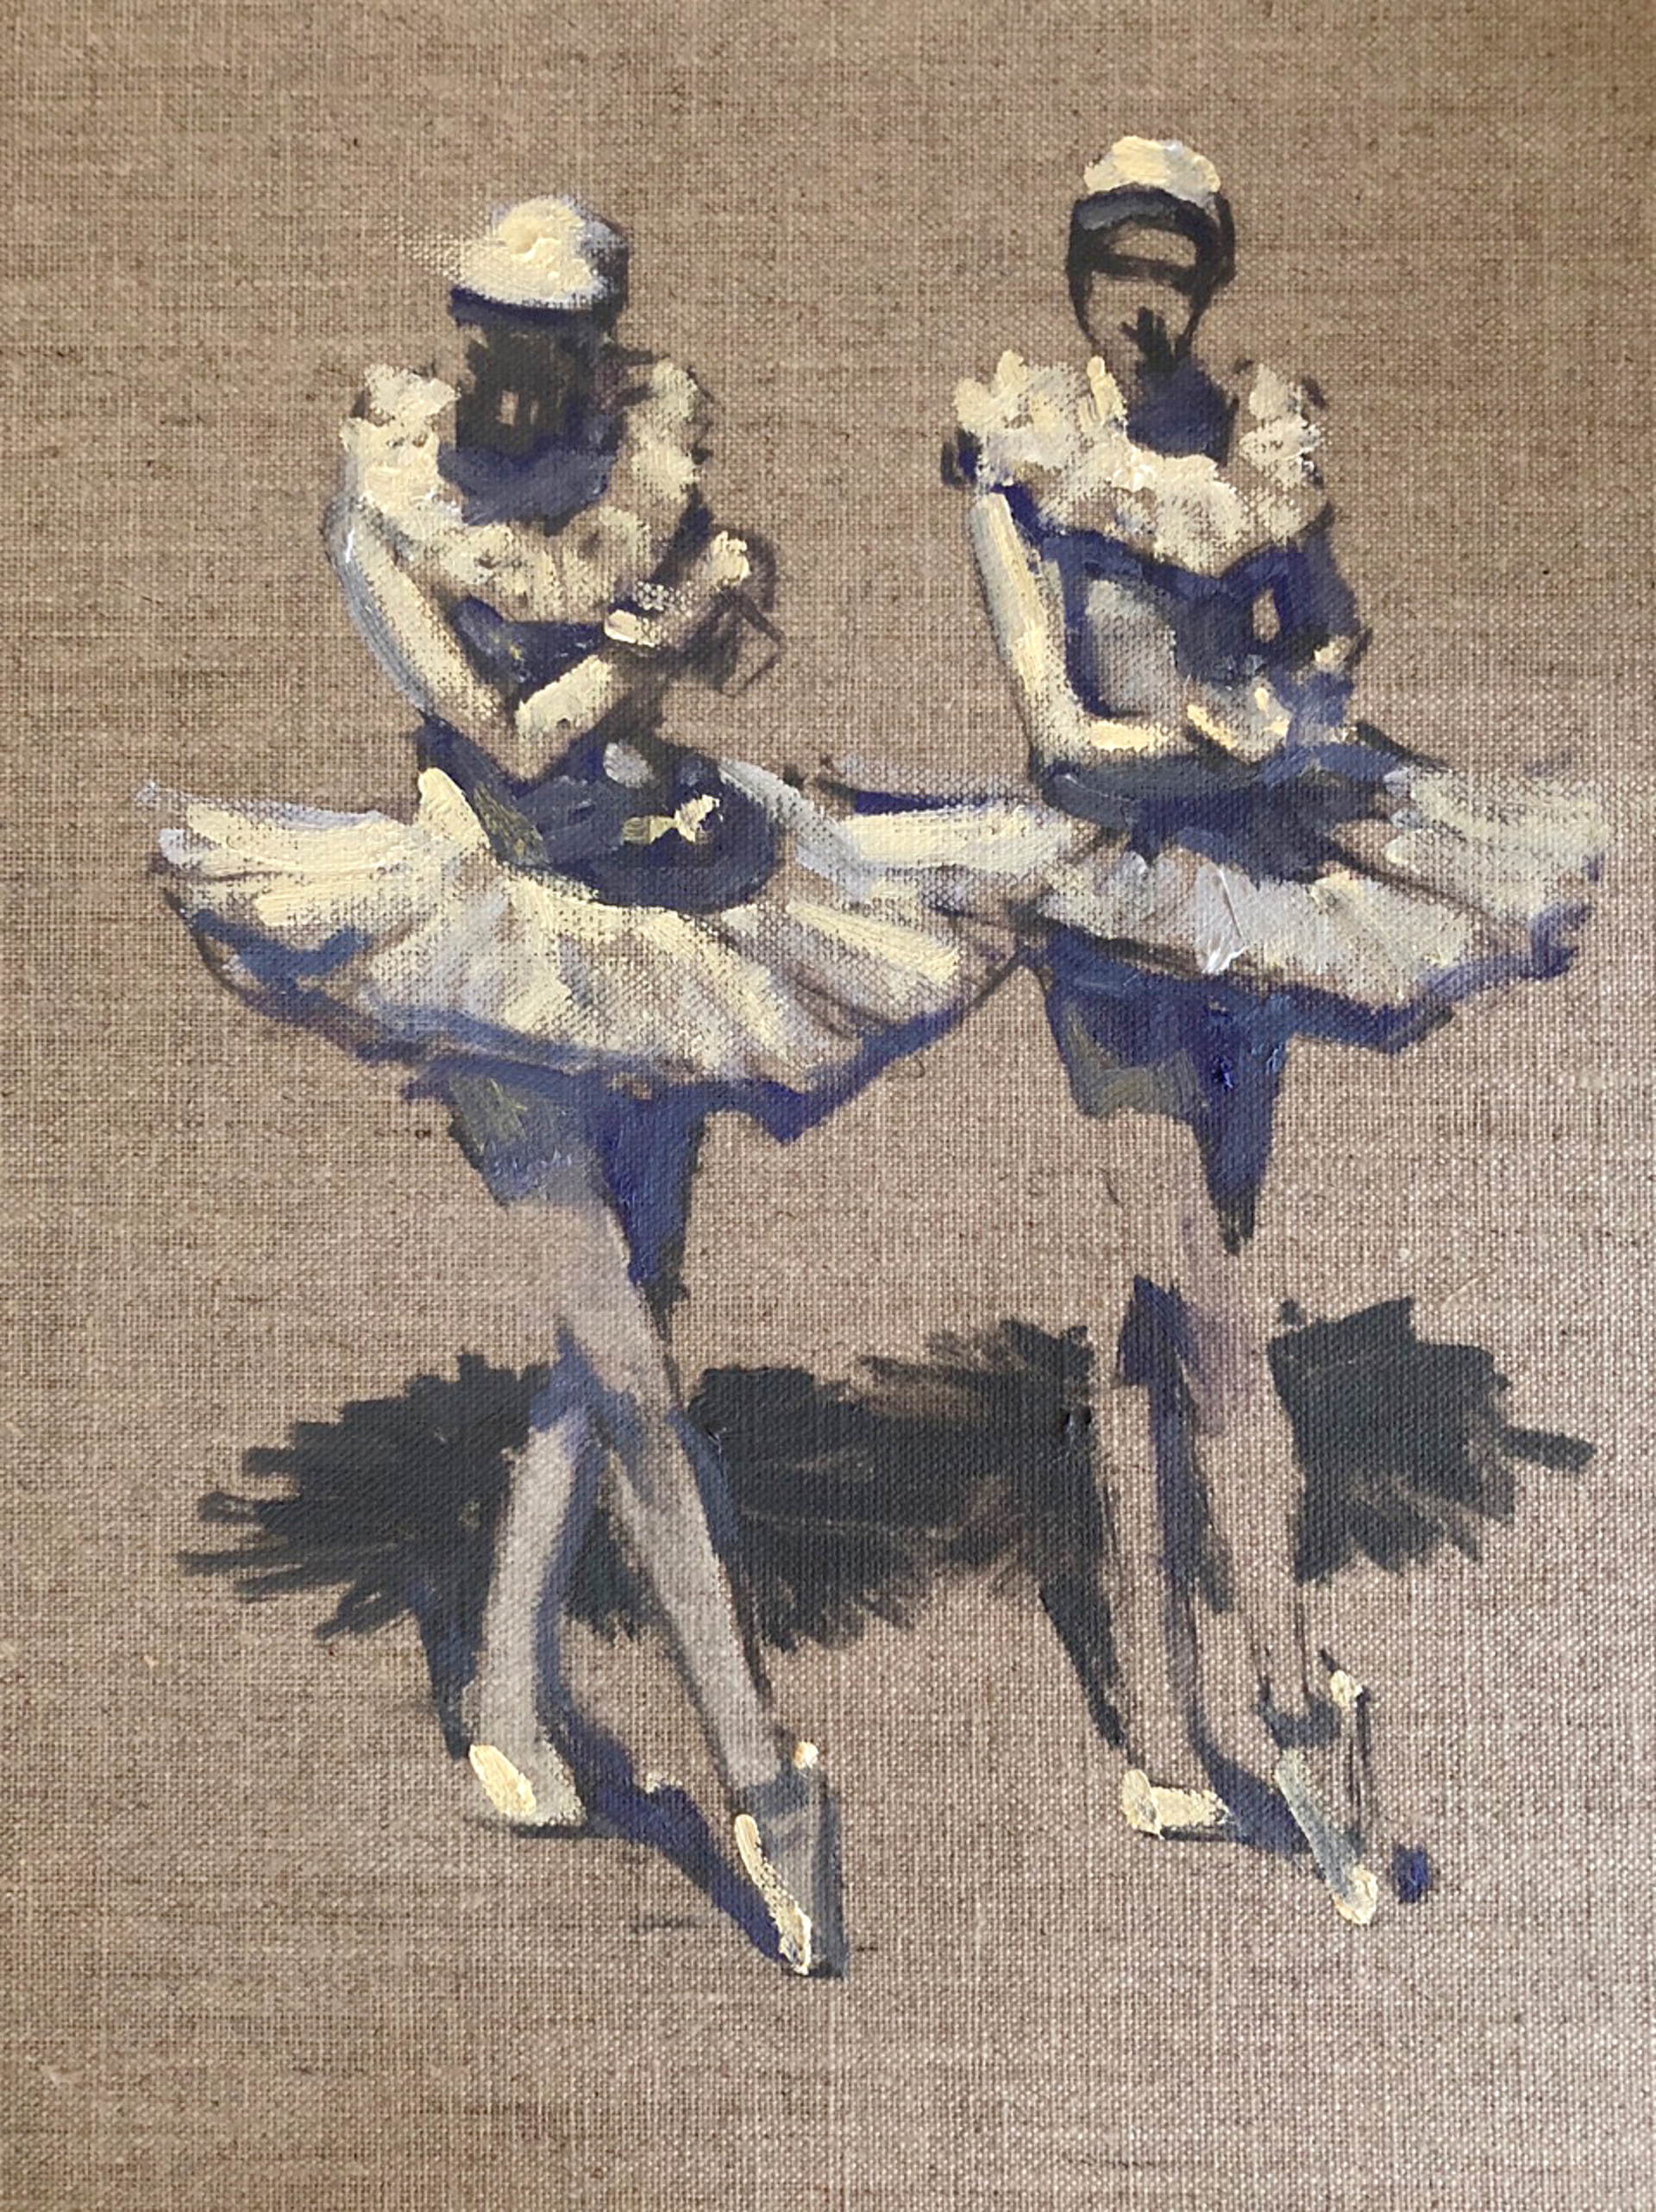 The White Ballet by Marjorie Hicks